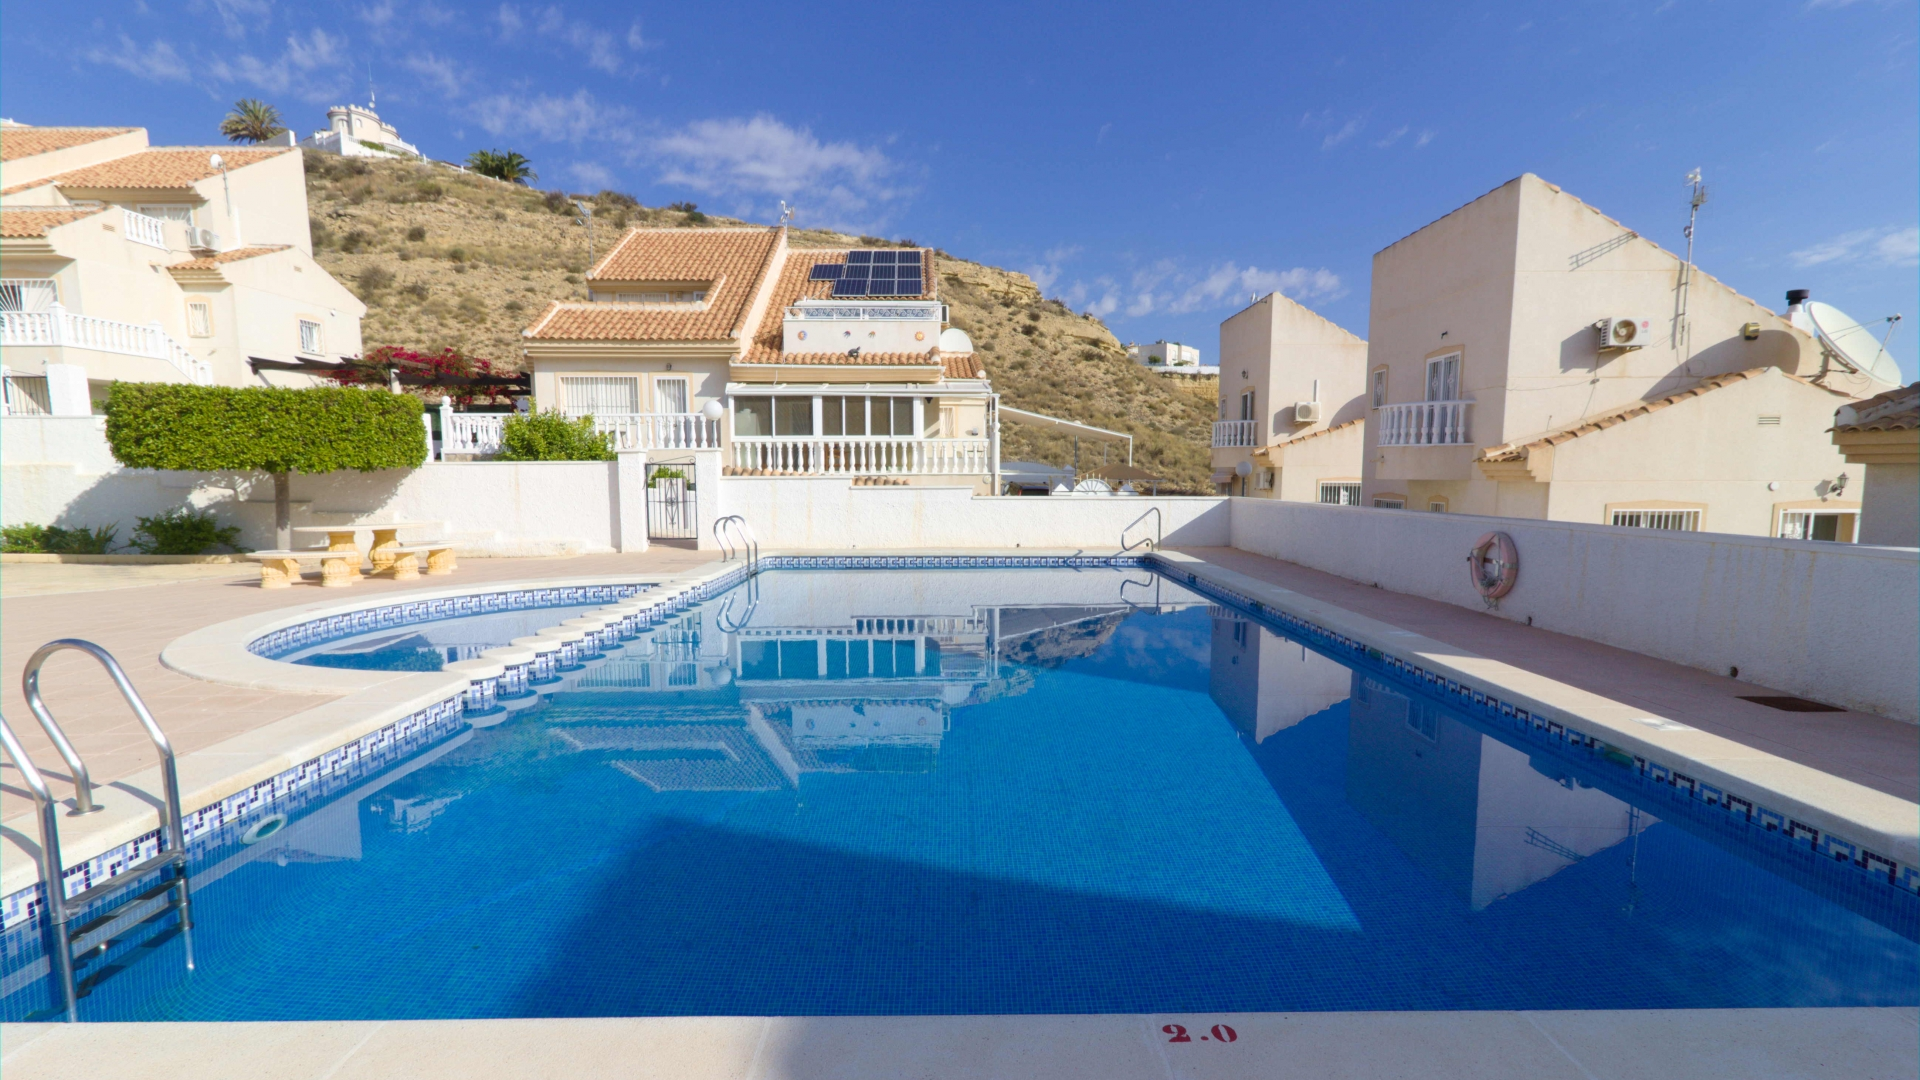 For sale: 5 bedroom house / villa in Ciudad Quesada, Costa Blanca